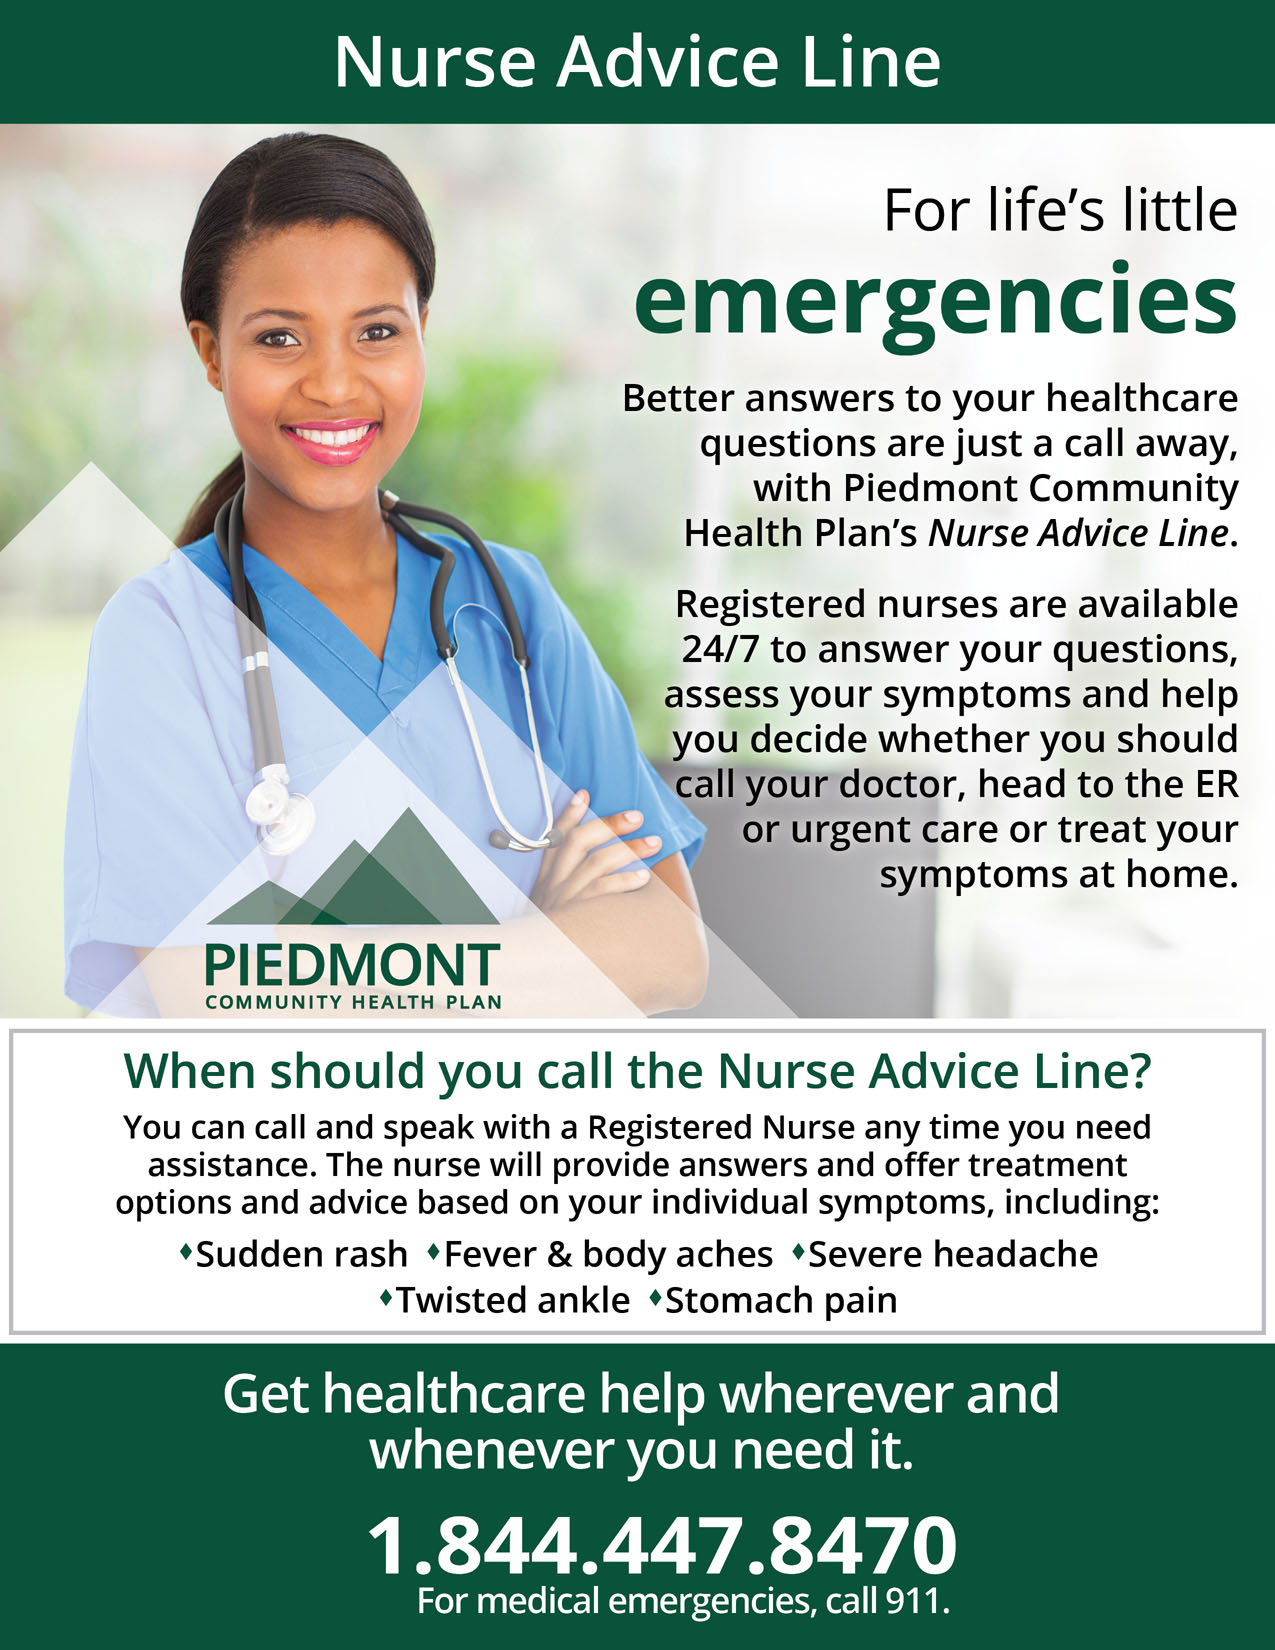 "Picture of a woman nurse and Piedmont Community Health Plan's logo. 2019 Nurse Advice Line: Content says ""For life's little emergencies. Better answers to your healthcare questions are just a call away, with Piedmont Community Health Plan's Nurse Advice Line. Registered nurses are available 24/7 to answer your questions, assess your symptoms and help you decide whether you should call your doctor, head to the ER or urgent care or treat your symptoms at home. When should you call the Nurse Advice Line? You can call and speak with a registered nurse whenever you need assistance. The nurse will provide answers and offer treatment options and advice based on your individual symptoms, including: sudden rash, fever and body aches, severe headaches, twisted ankles, and stomach pain. Get healthcare help wherever and whenever you need it. 1-844-447-8470. For medical emergencies, call 911."""